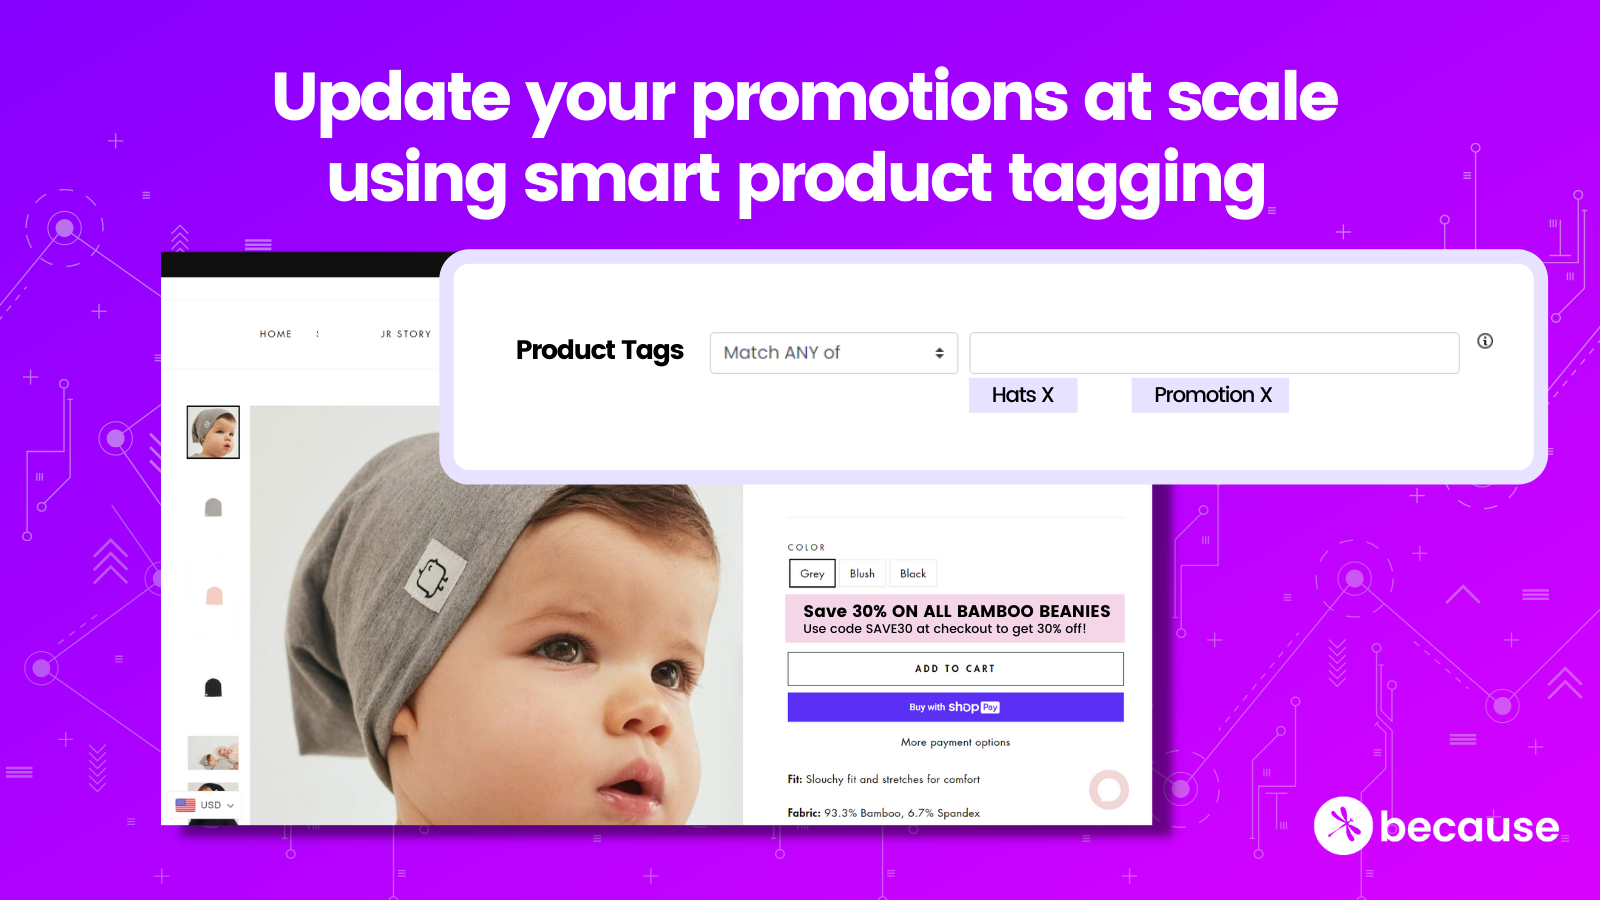 Update promotions at scale using smart product tagging